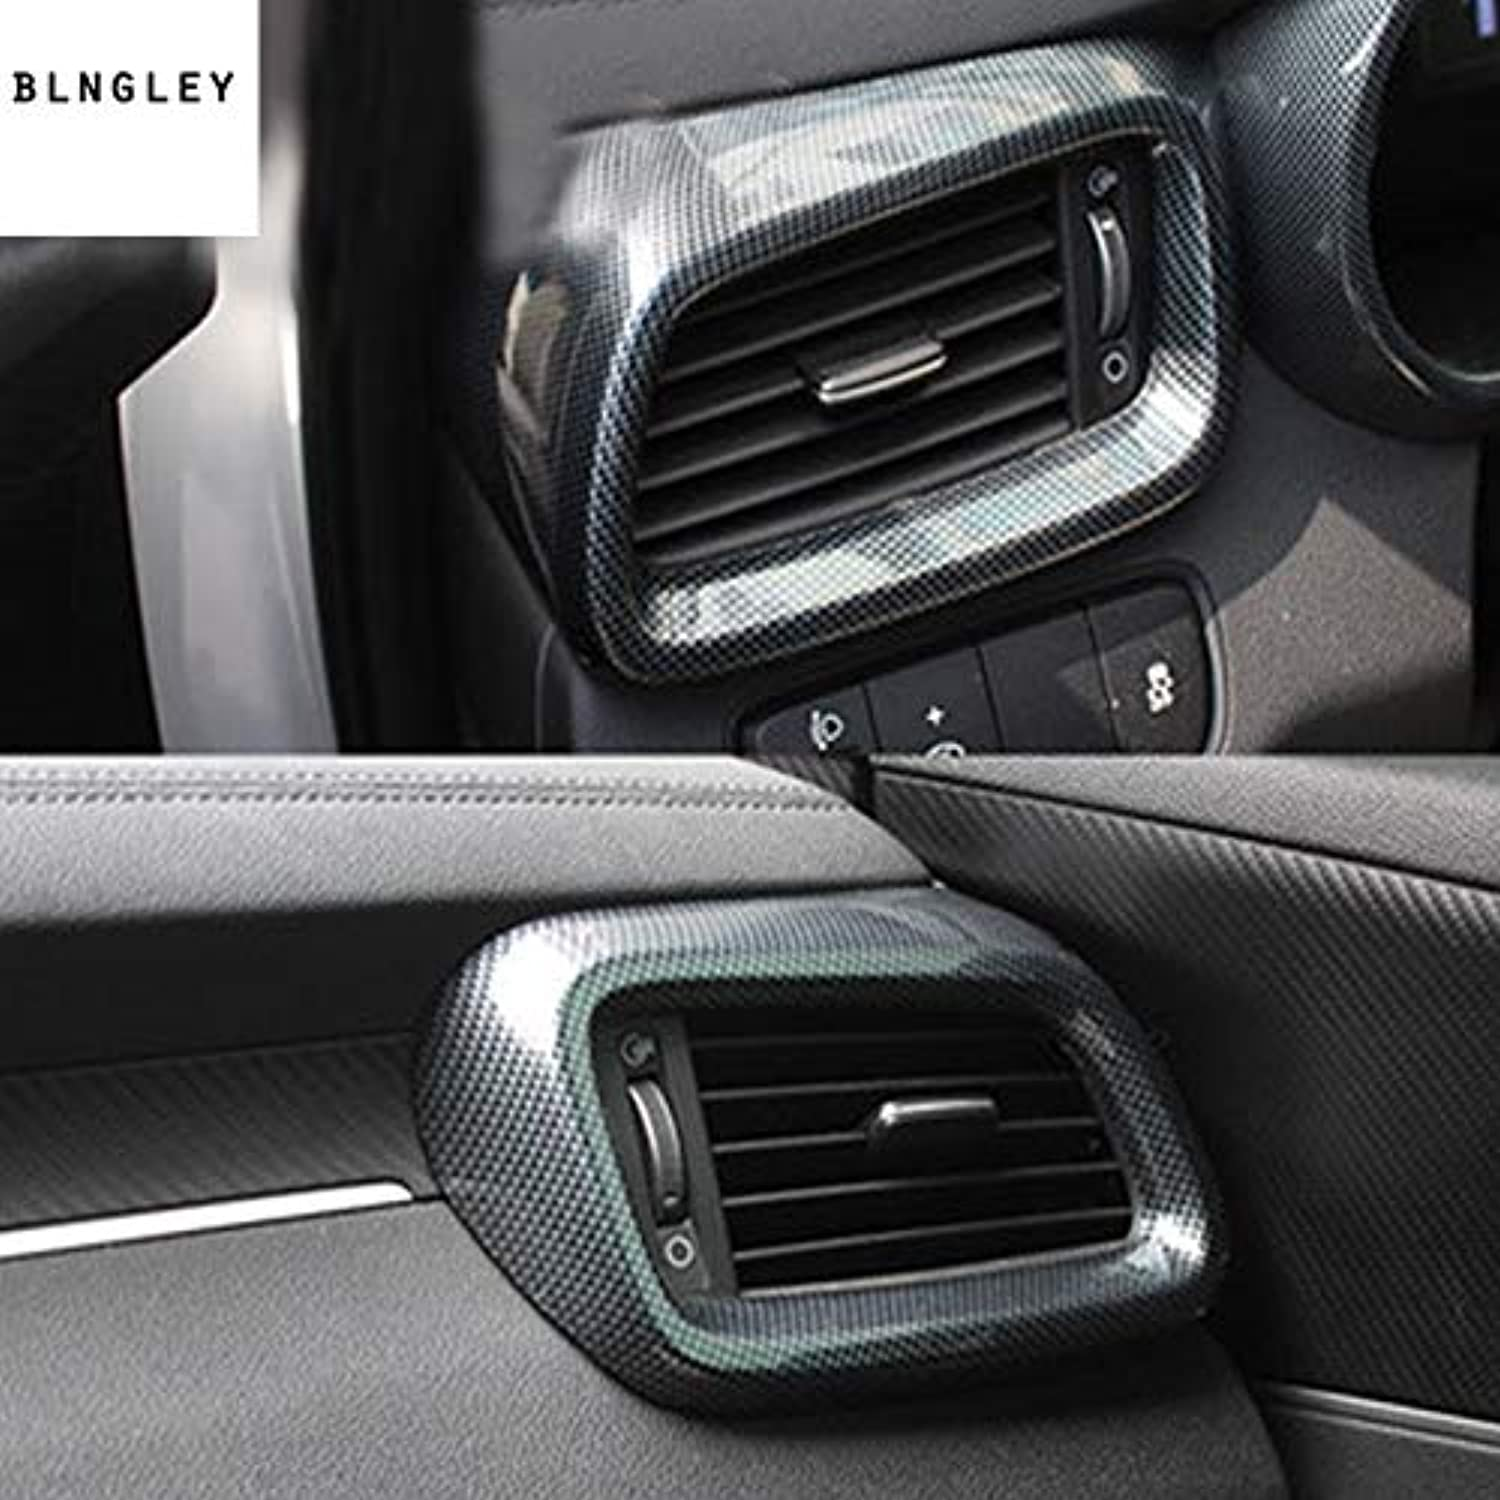 2pcs lot ABS Carbon Fiber Grain Front Both Sides air Conditioning Outlet Decoration Cover for 20152018 KIA Sorento